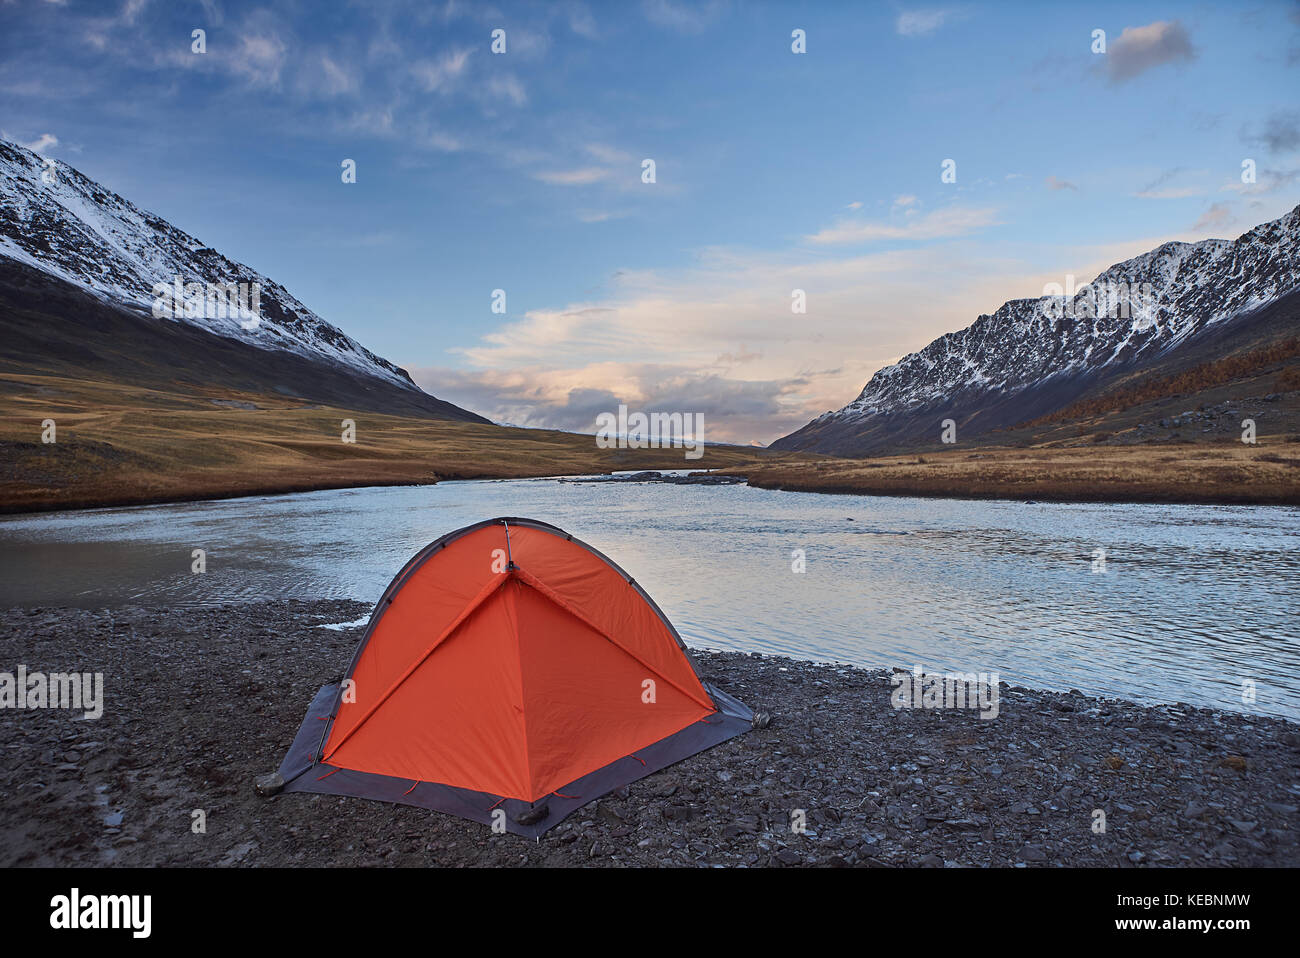 Campsite and an orange tent near a river with Snow-capped peaks in the Mountains - Stock Image